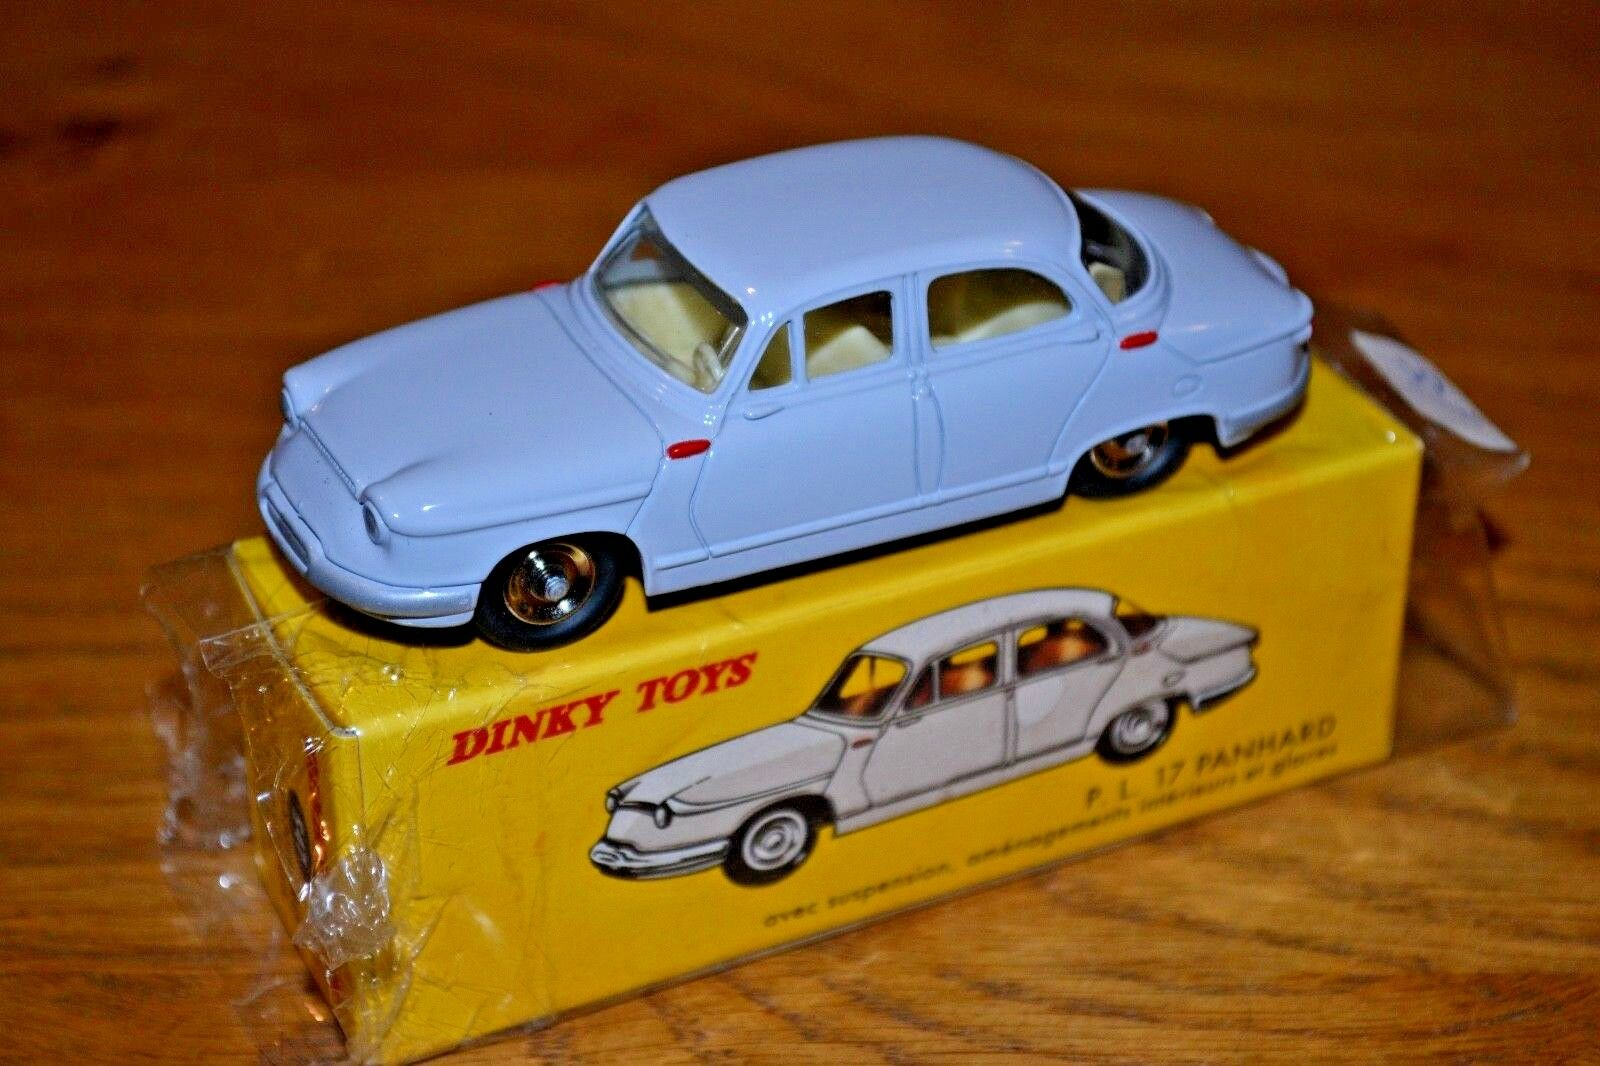 2008 French Dinky Toys Atlas Edition Diecast No. 547 PL 17 Panhard